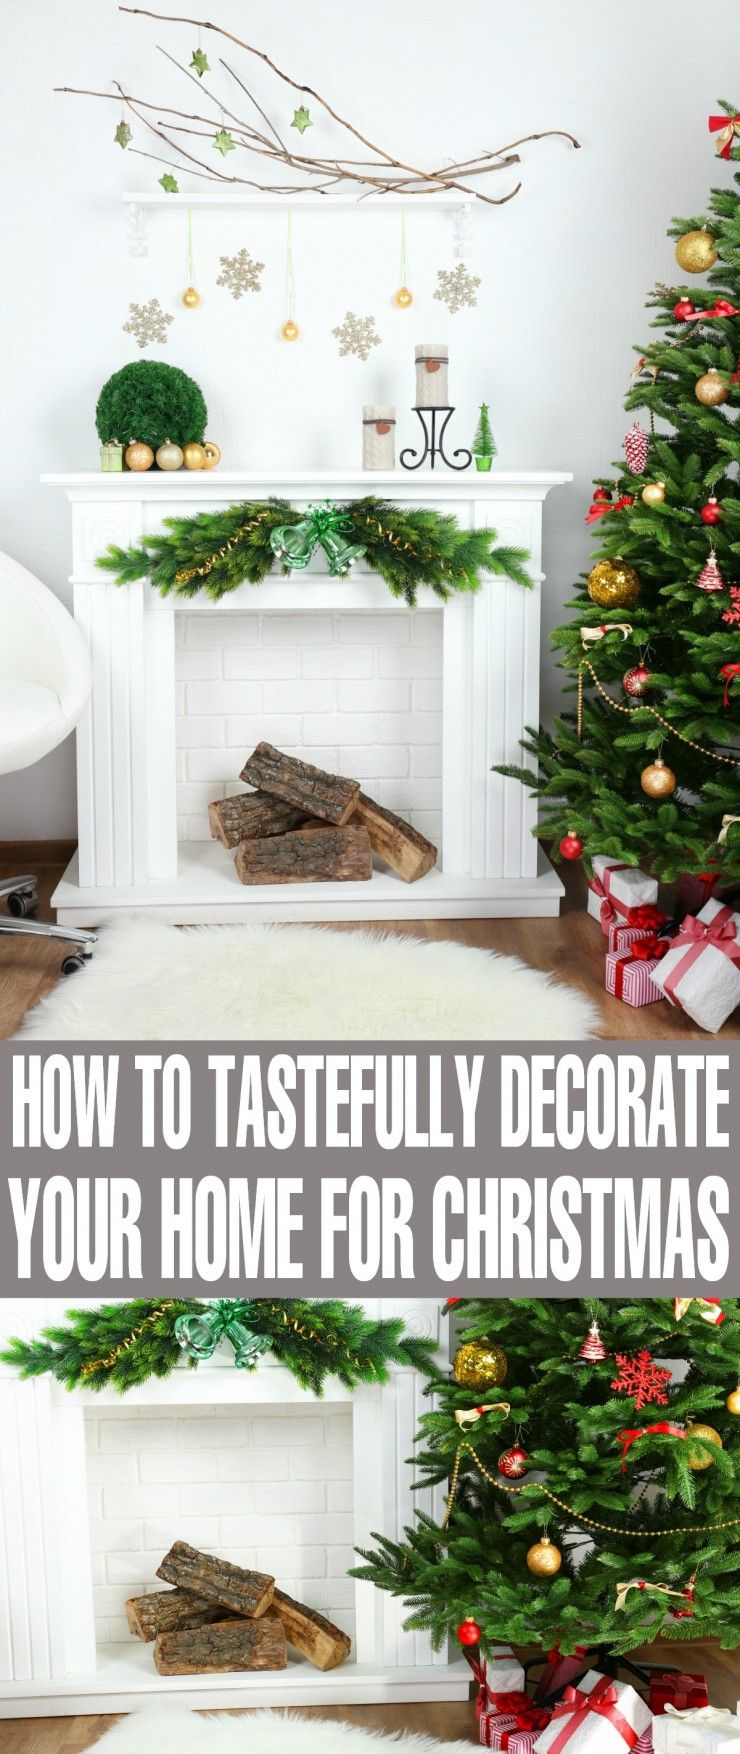 weve come up with a few tips to help you tastefully decorate your home for christmas